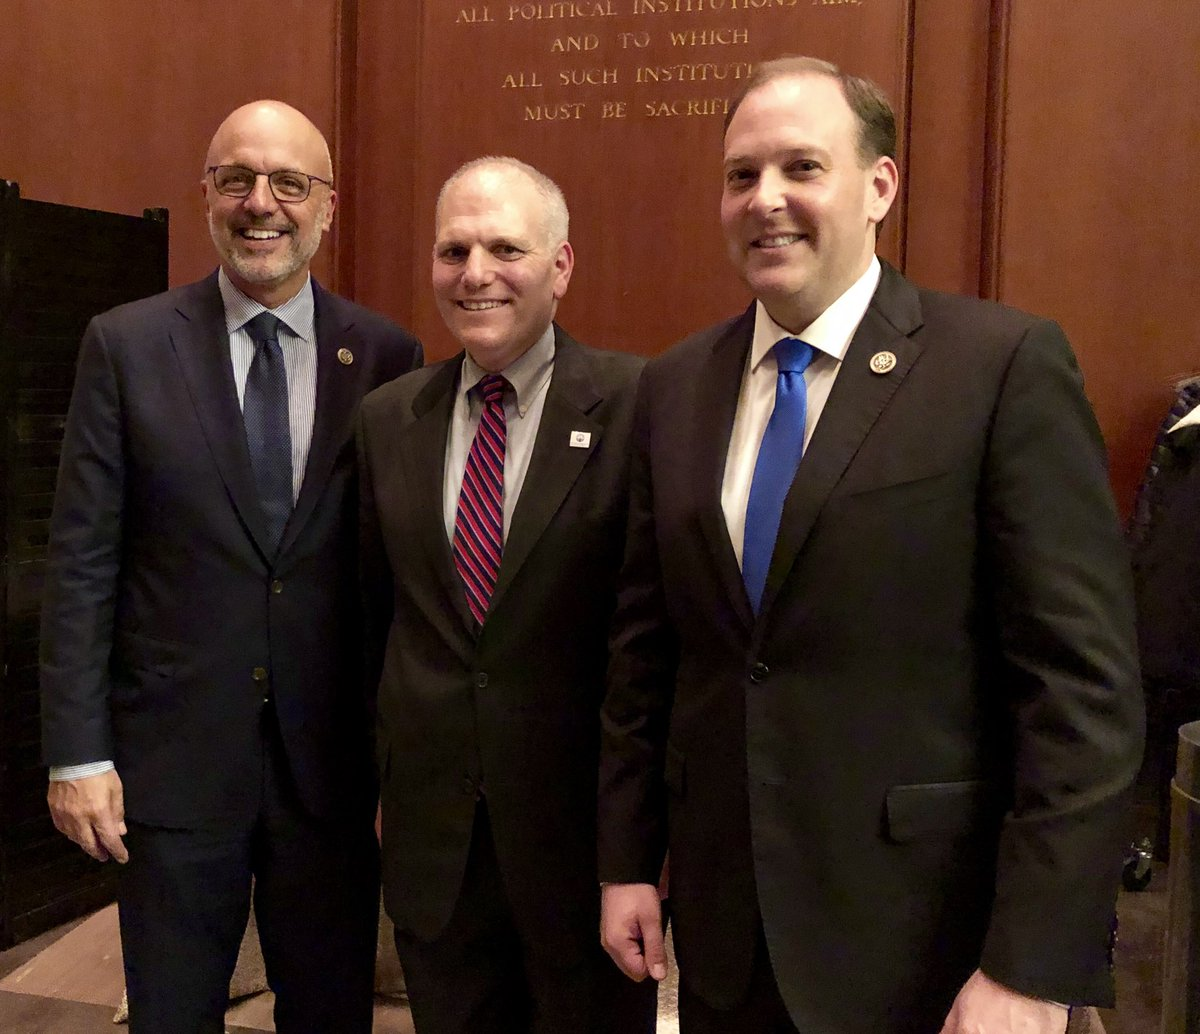 Post-partisan #Hannukah with great Americans @RepTedDeutch and @RepLeeZeldin!